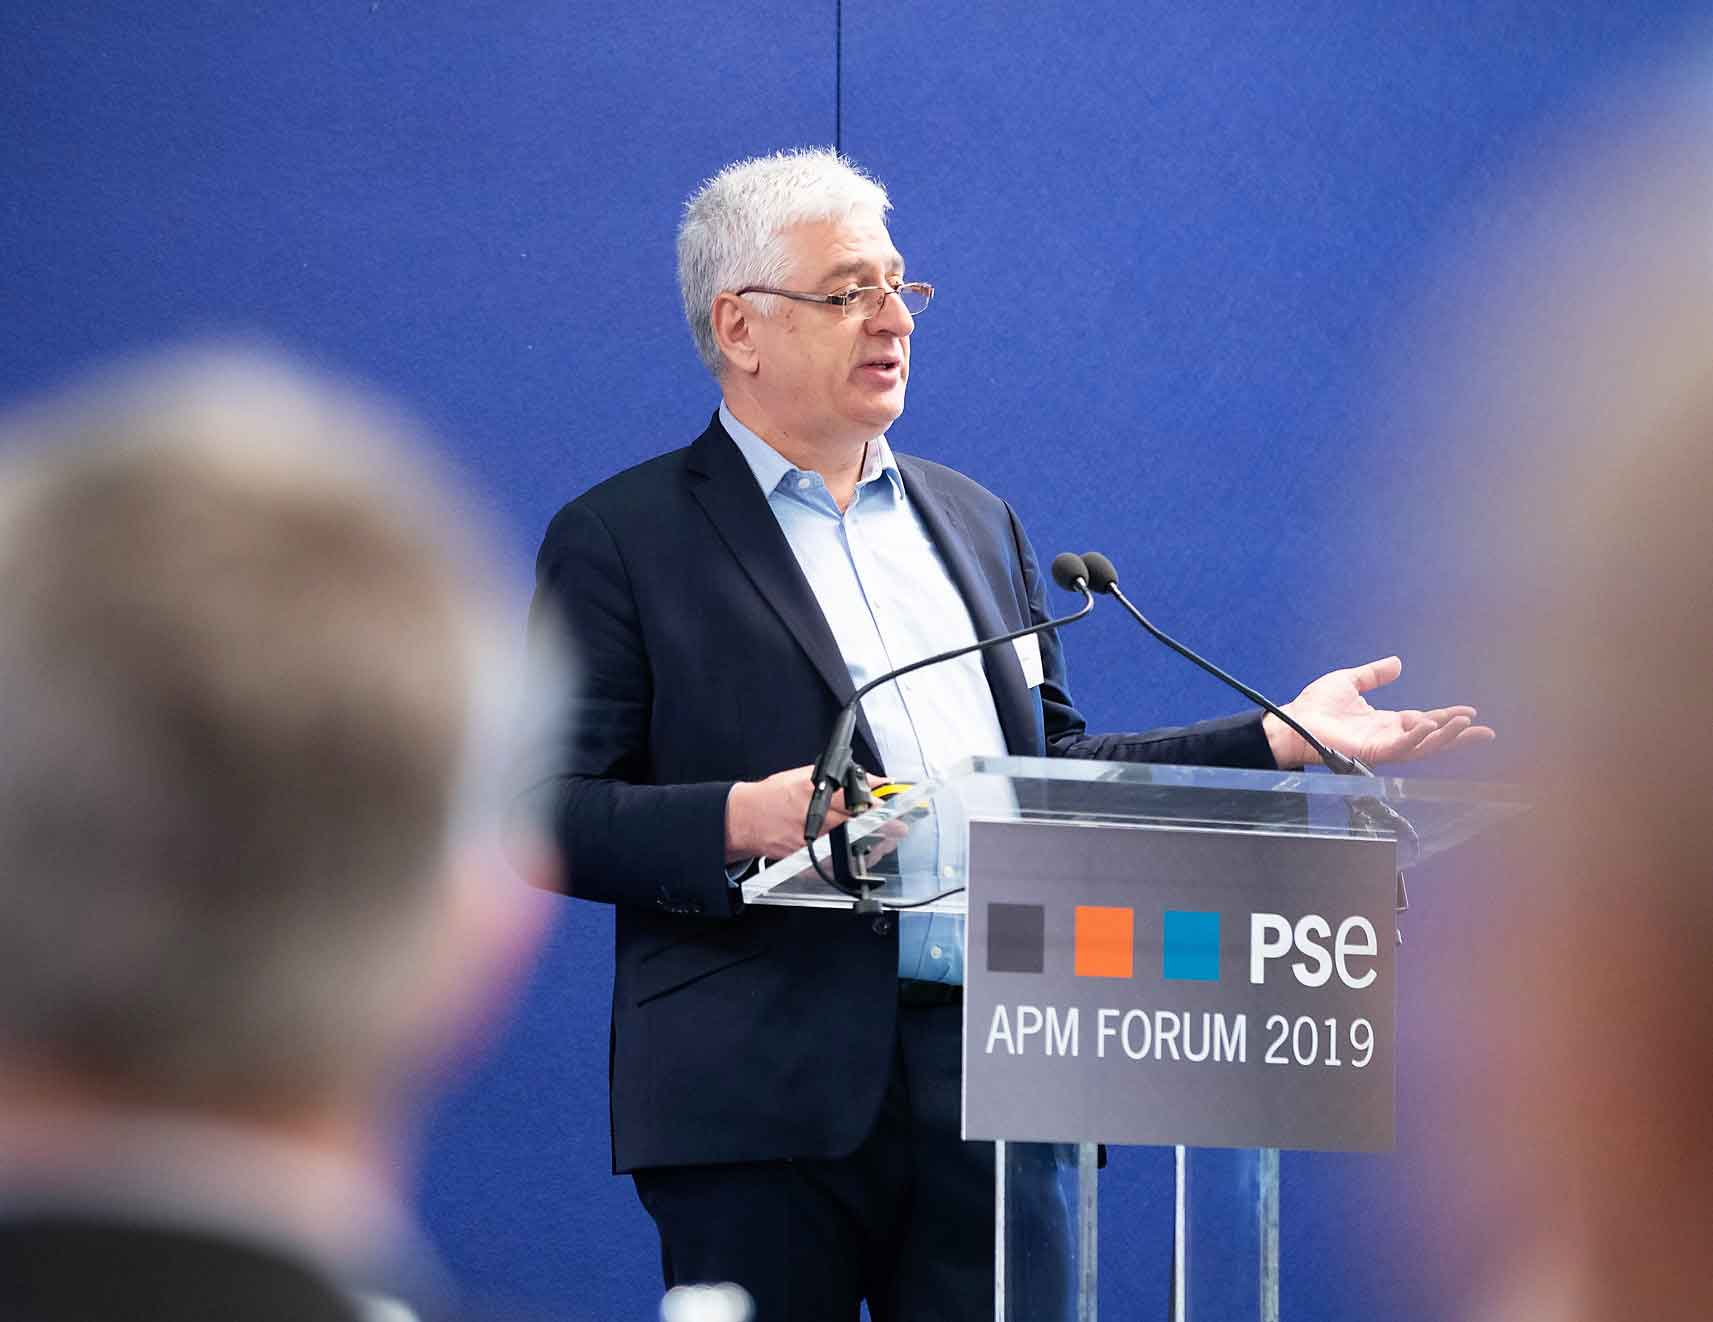 Prof. Costas Pantelides, PSE MD at APM Forum 2019